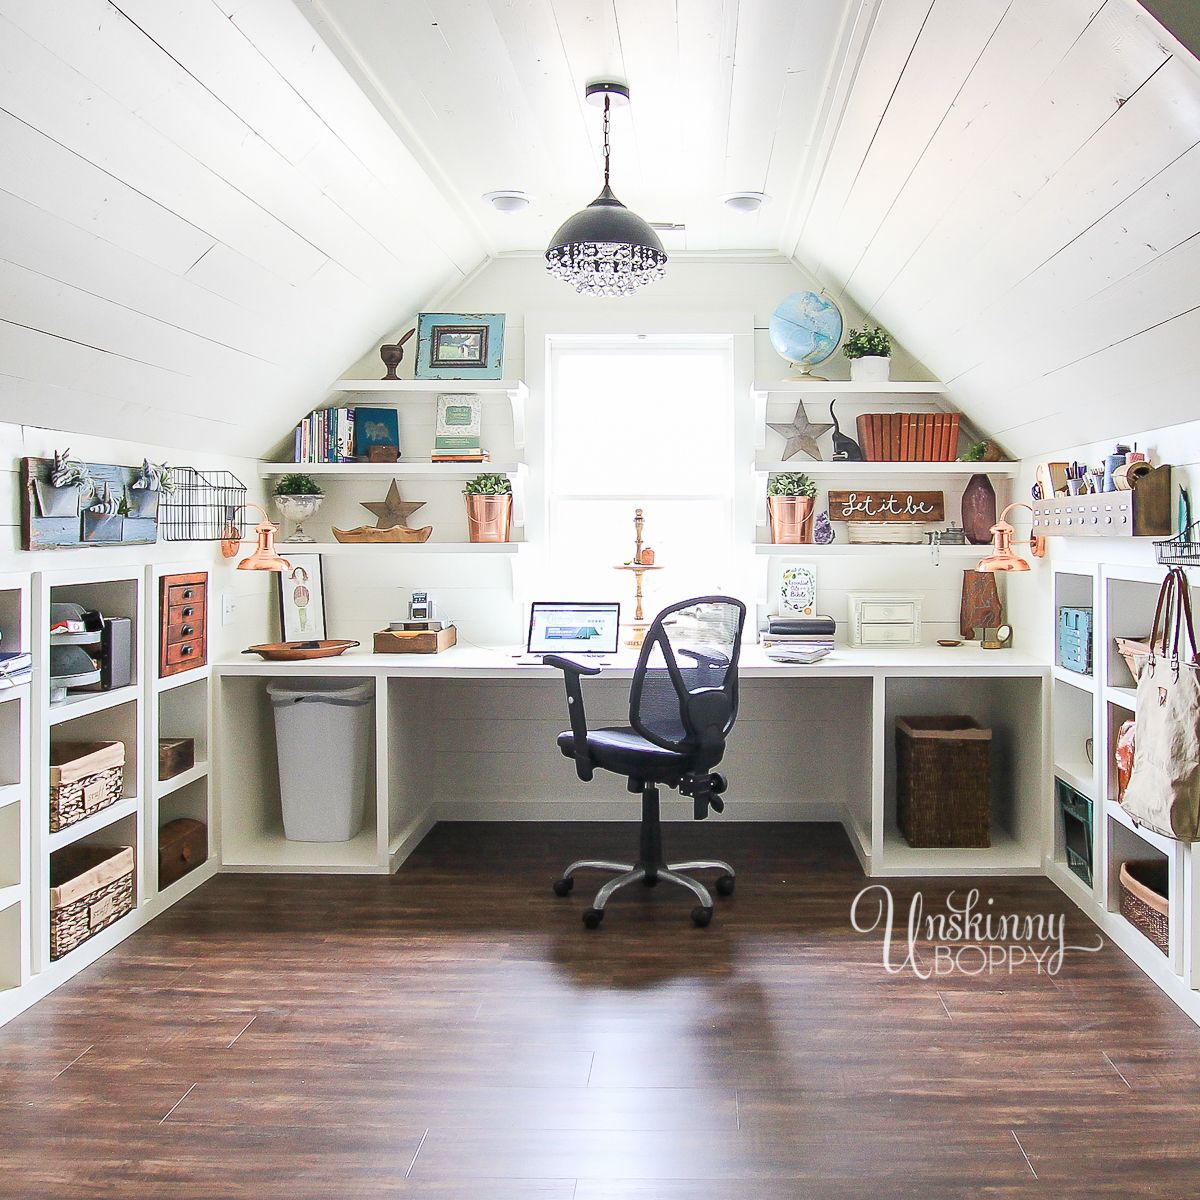 5 Tips How To Decorating An Artistic Home Office: Amazing Office/Craft Room Organization In The Attic